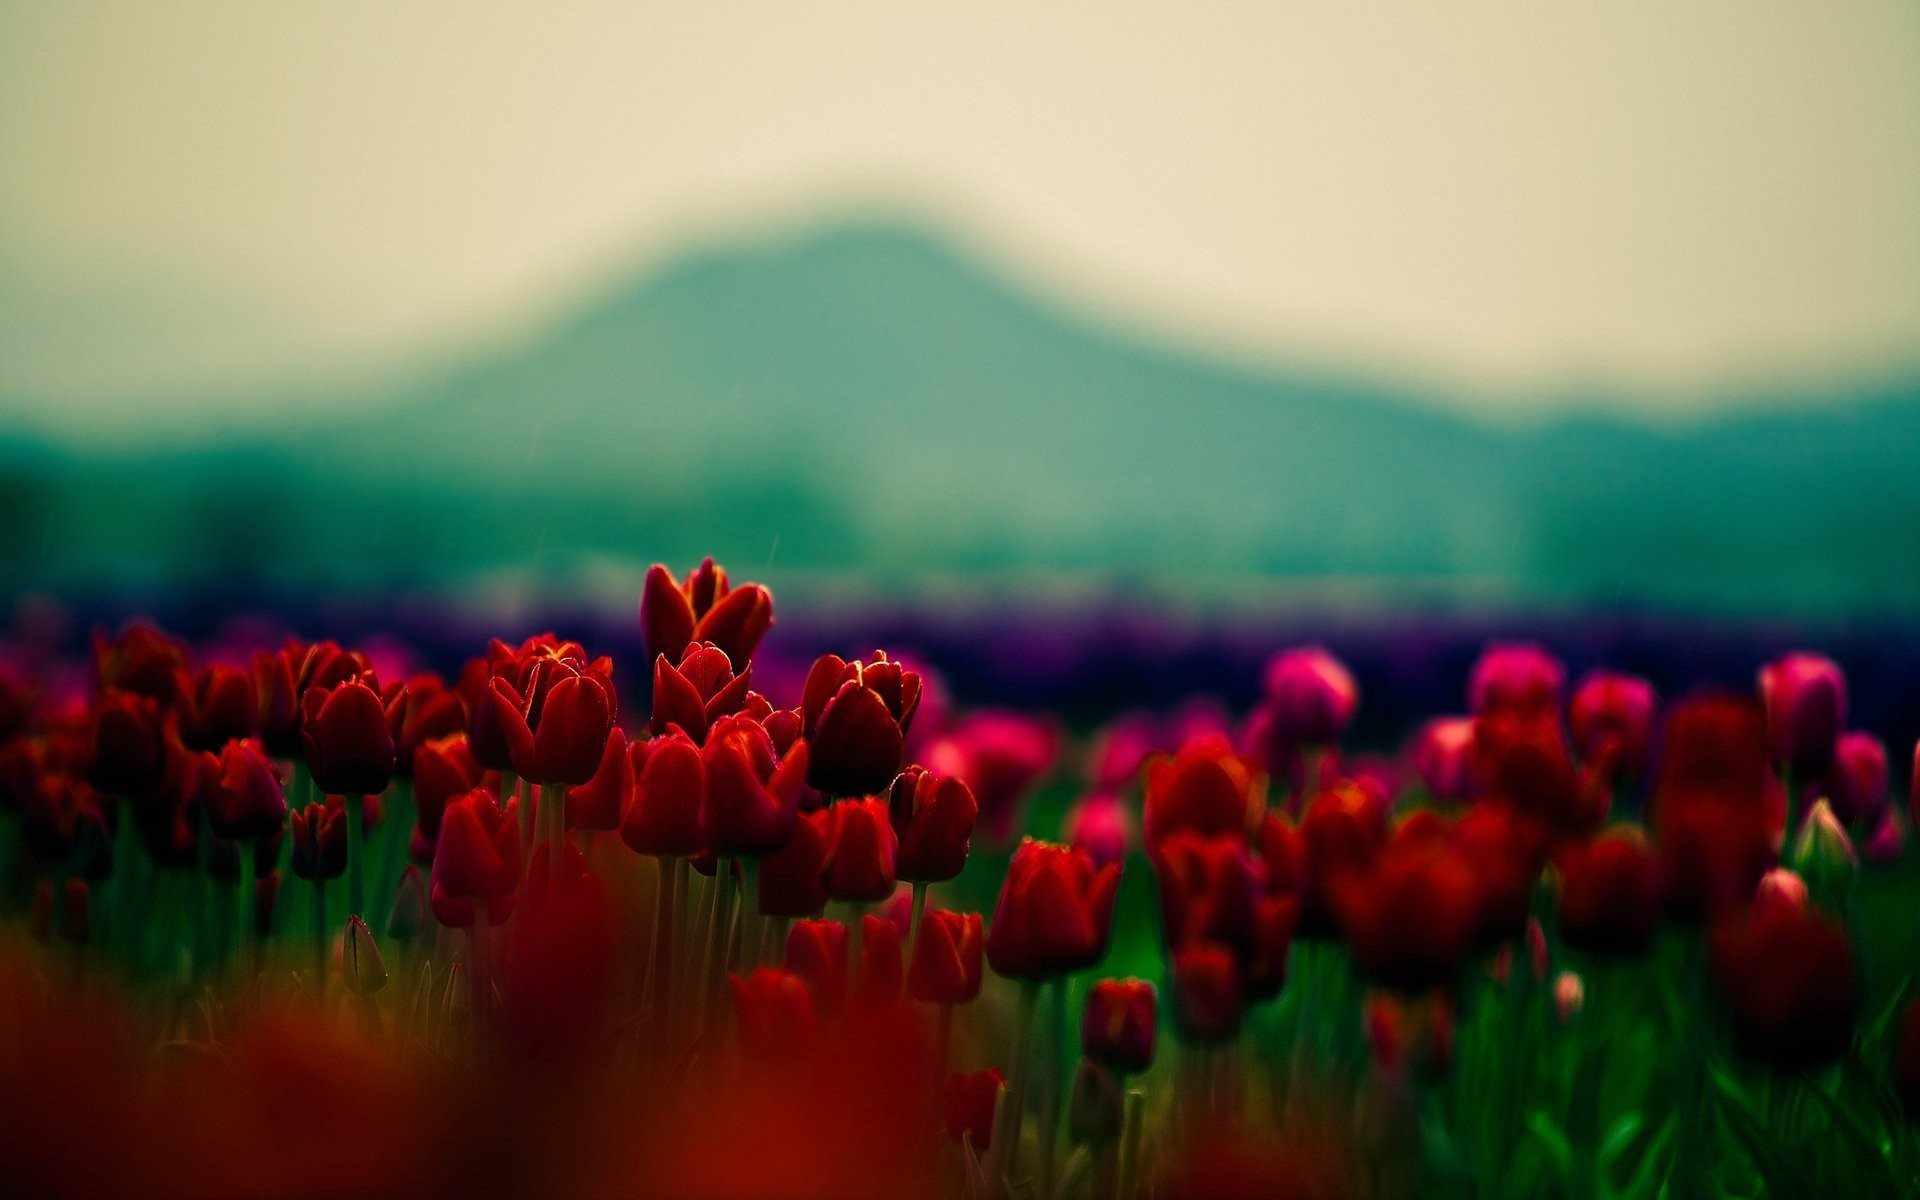 Res: 1920x1200, flowers wallpaper tulips red flowers flower beauty beautiful flowers  beautiful wallpaper petals close-up wallpaper